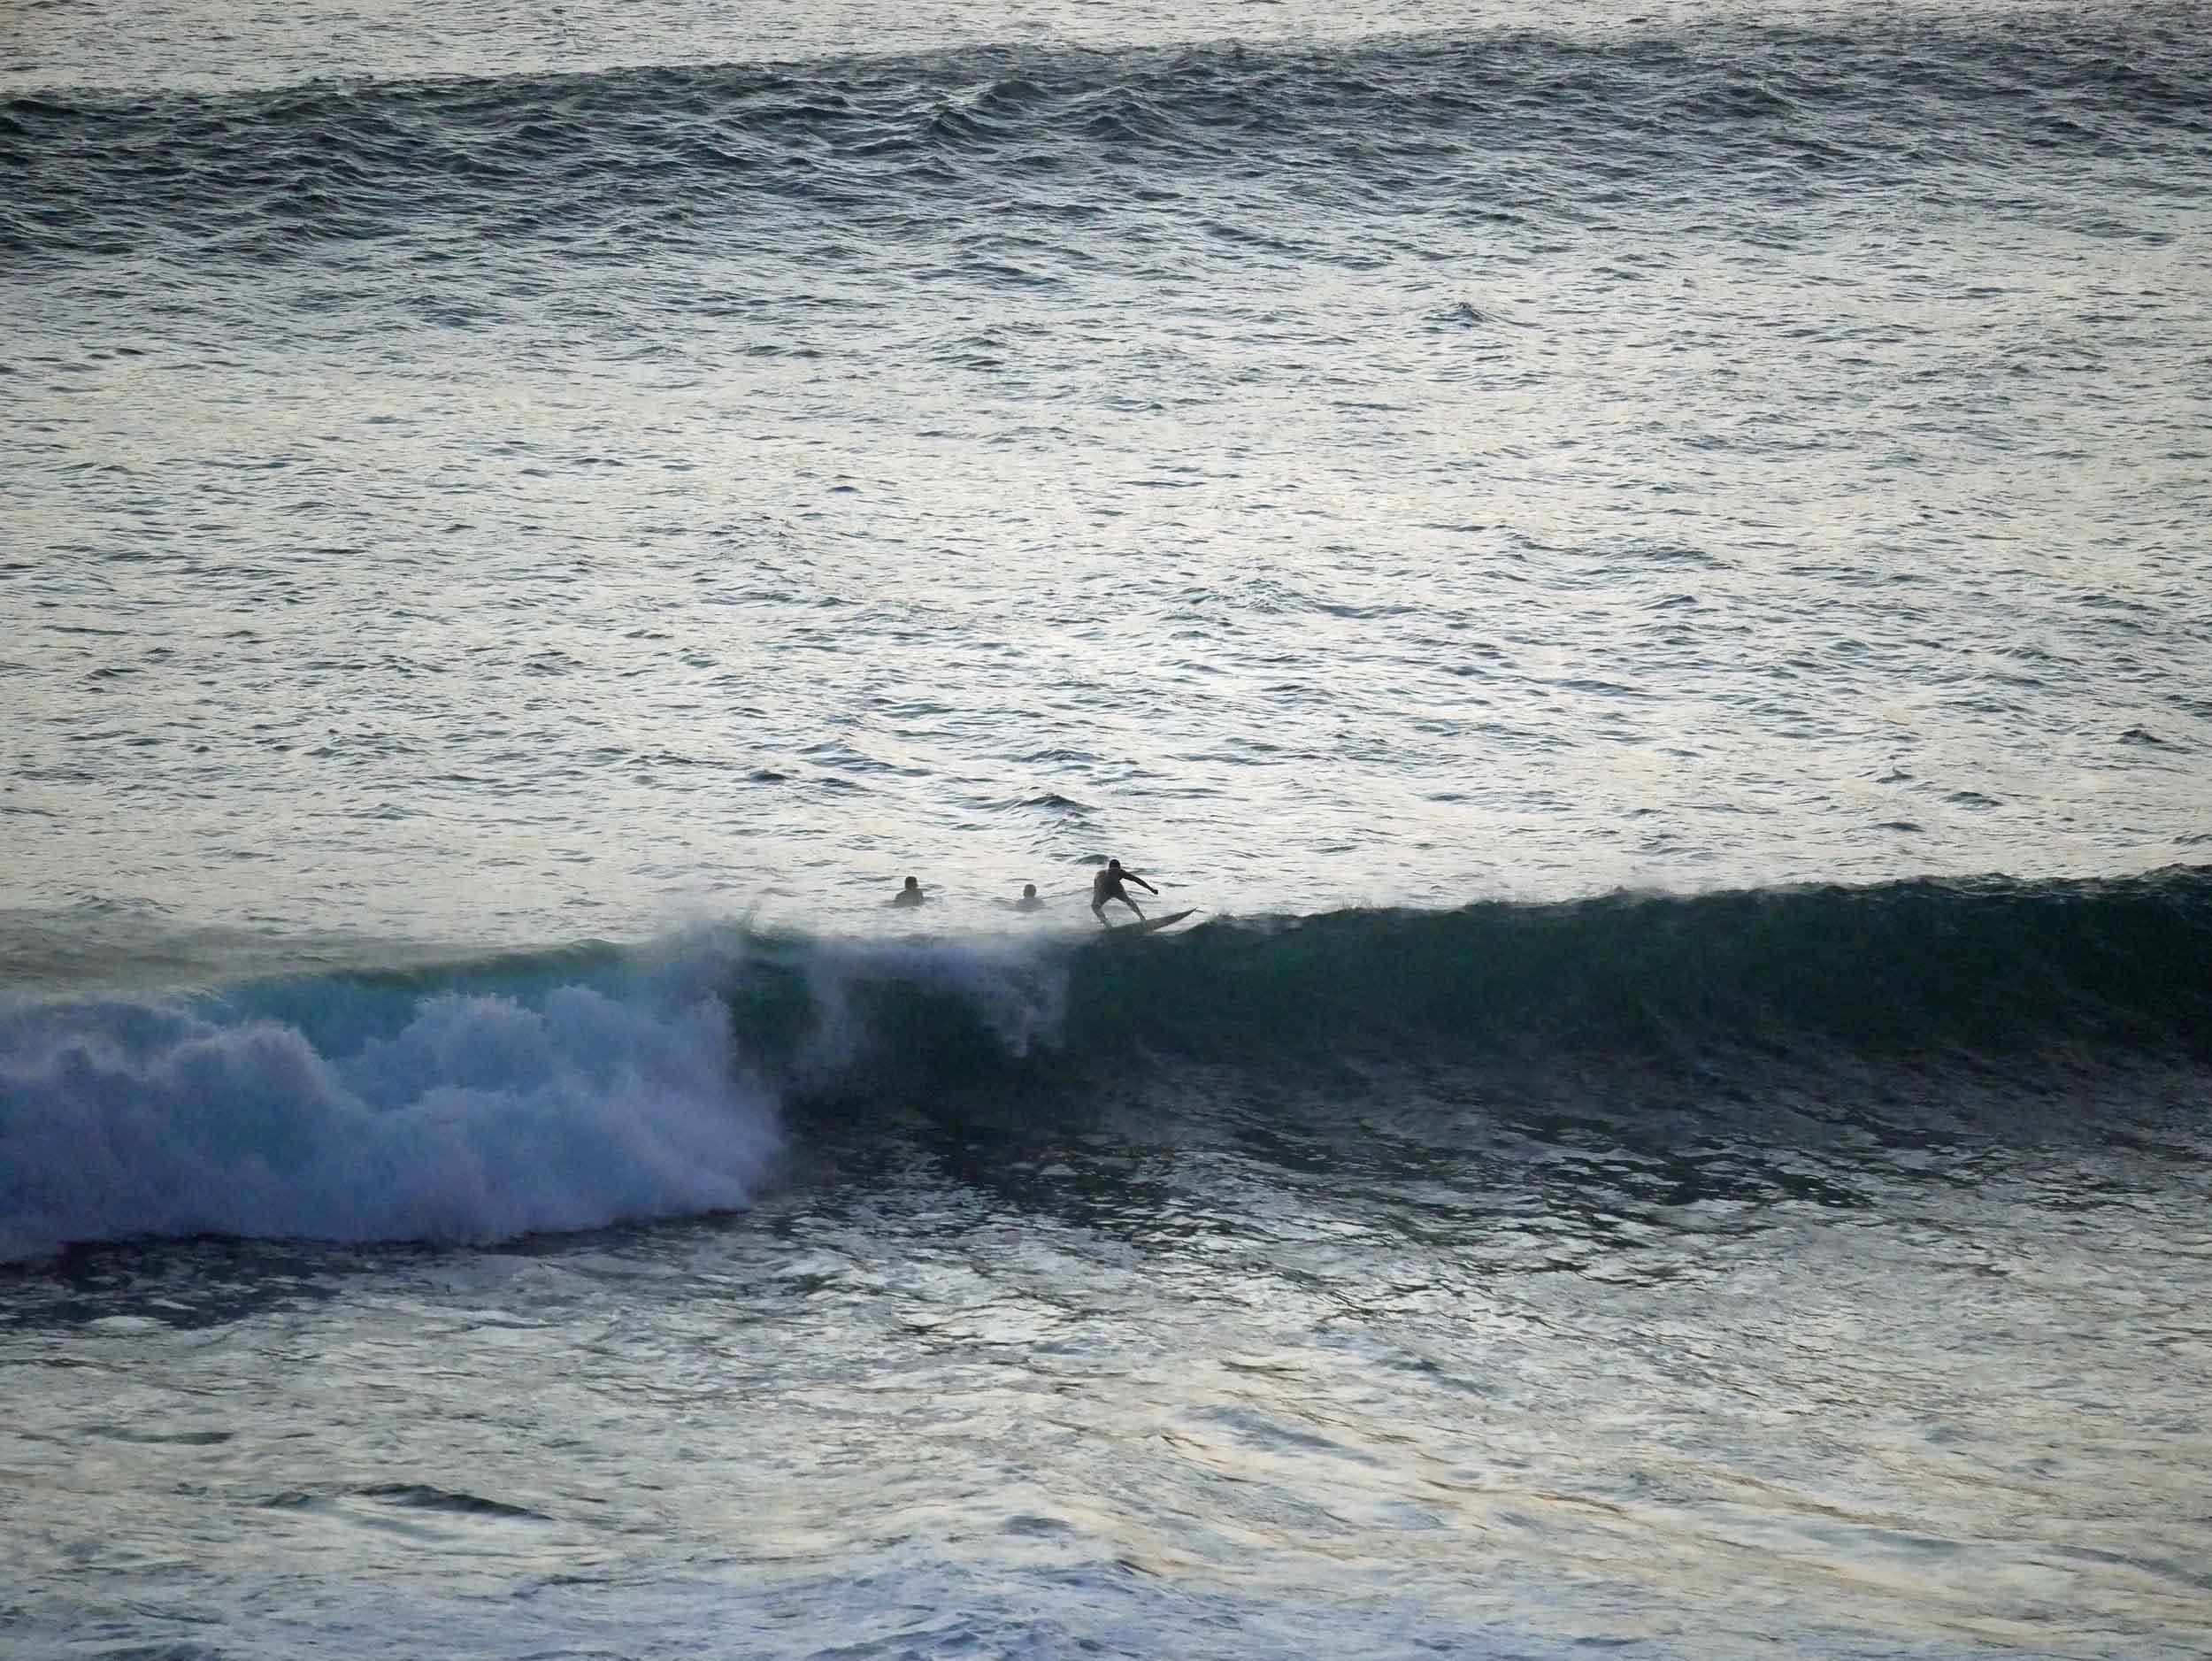 Uluwatu is also very well known for its powerful waves, but here surfing is mostly left to the professionals (June 6).